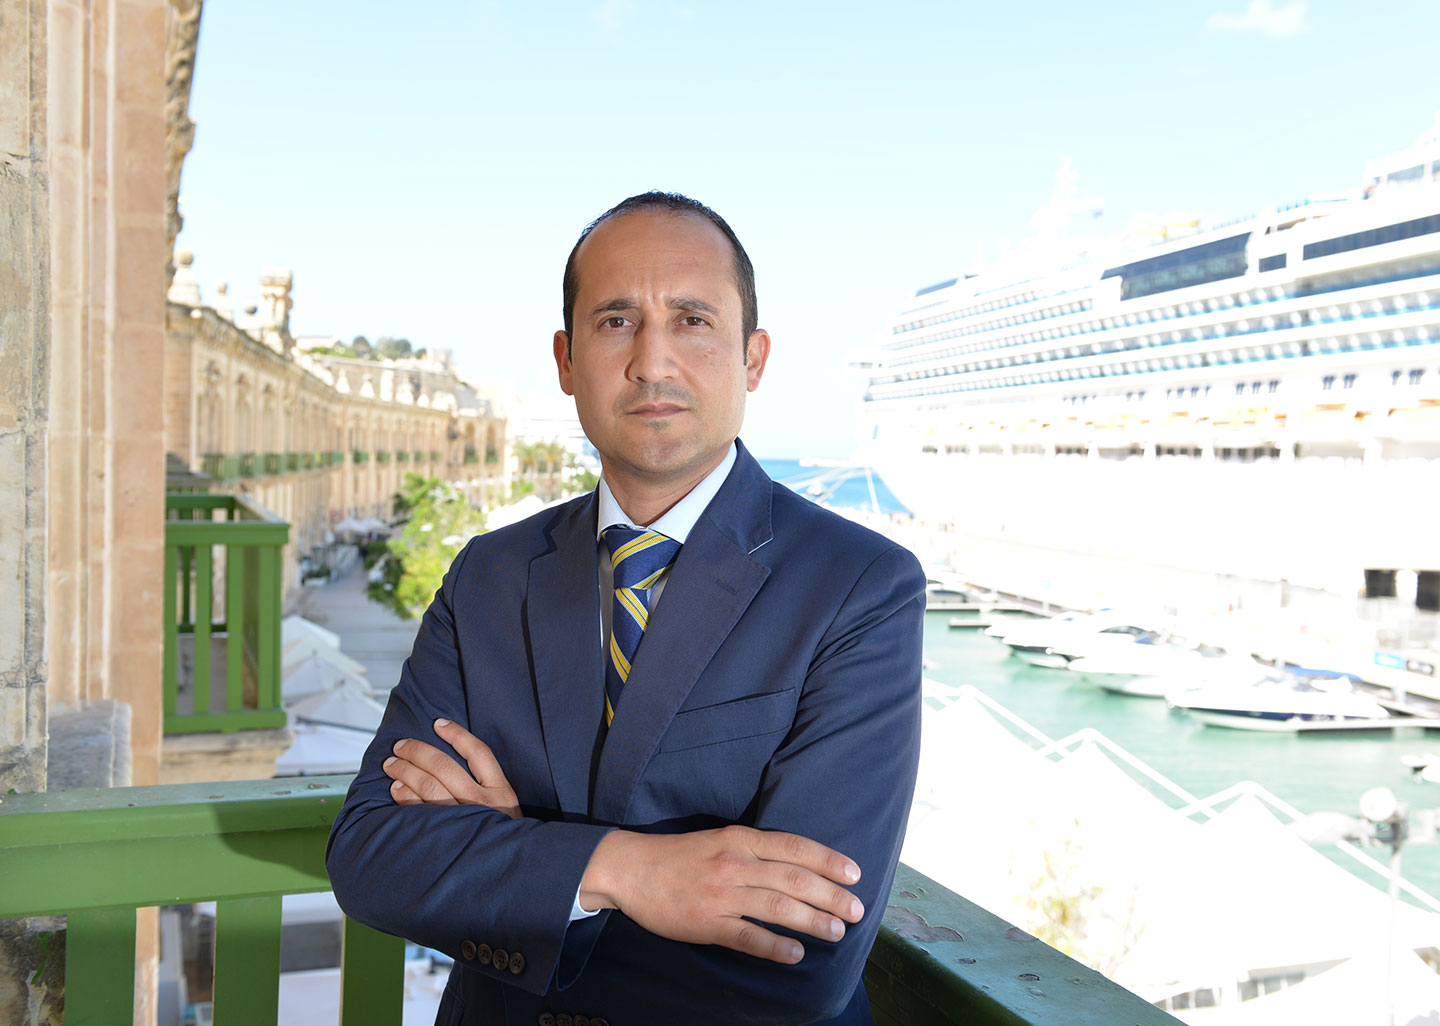 Global Ports Holding, the majority shareholder of Valletta Cruise Port strengthens the top management with the appointment of a Chief Operating Officer